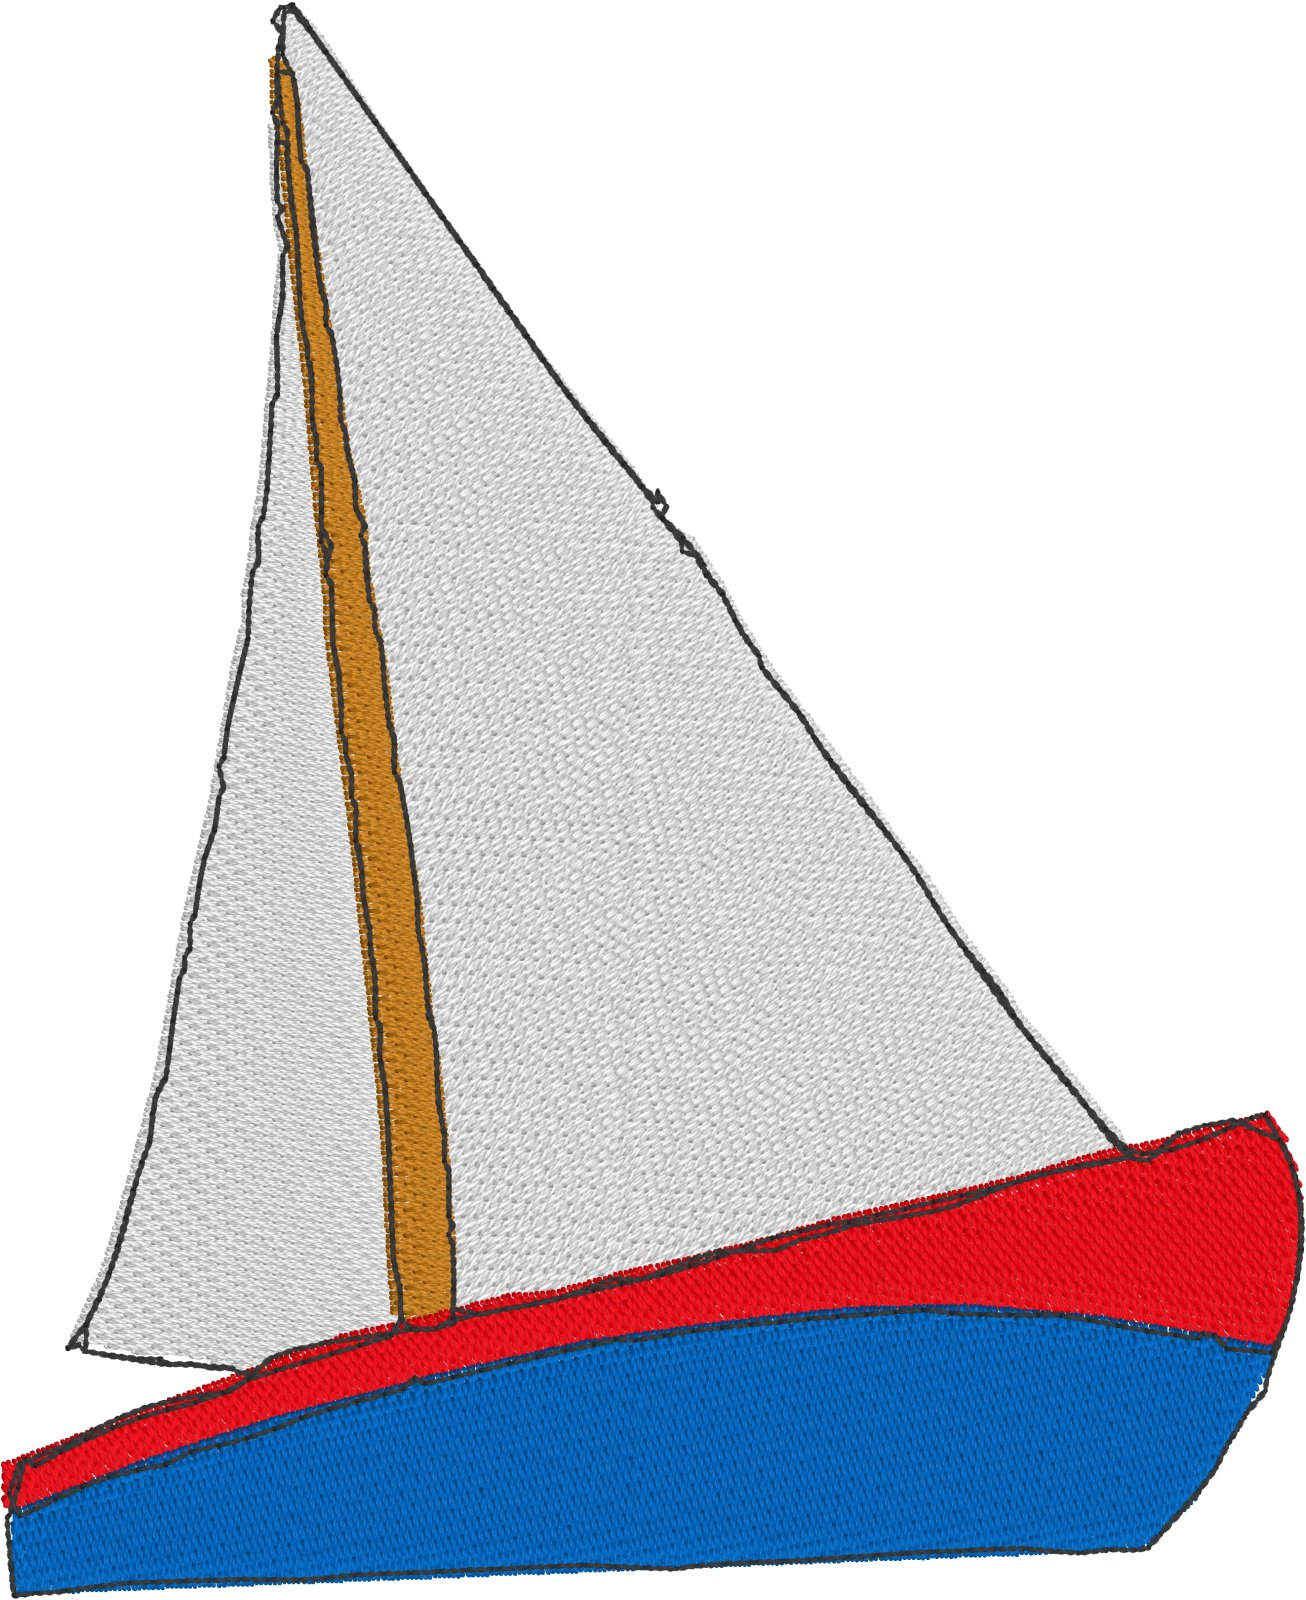 Row by Row 2017 Virginia Large Sailboat Embroidery File